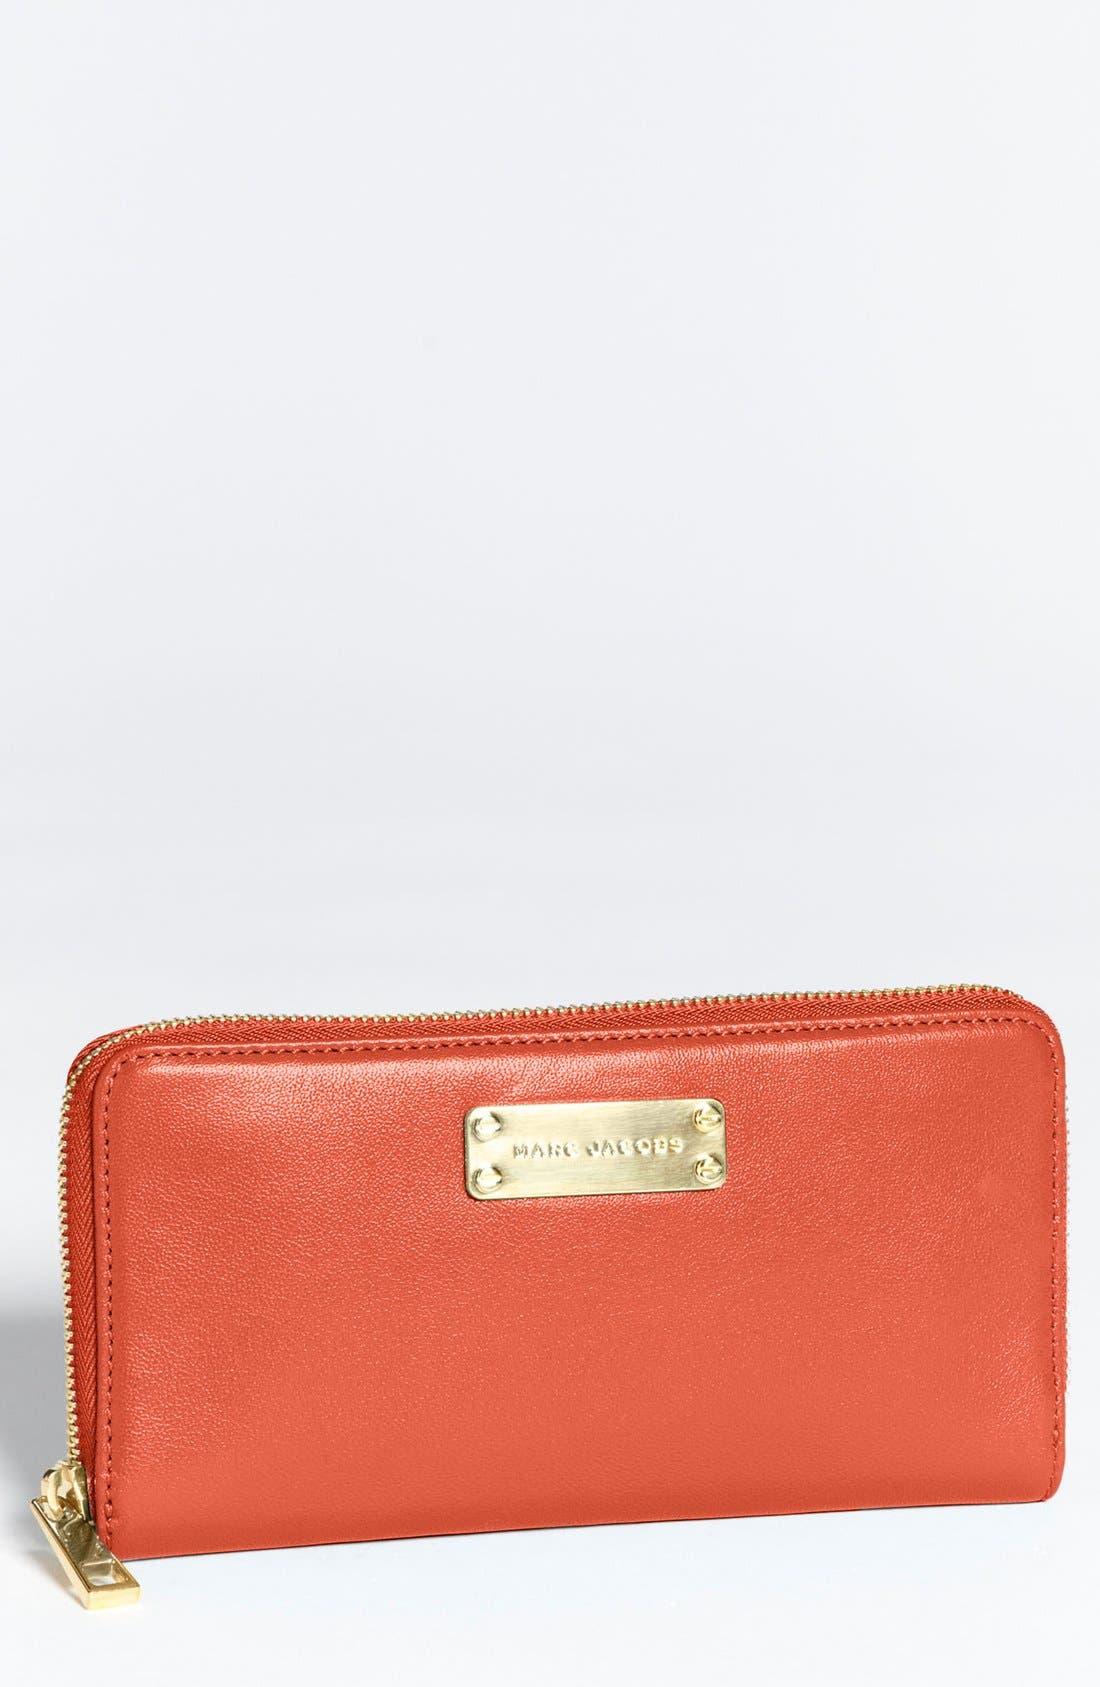 Alternate Image 1 Selected - MARC JACOBS 'Deluxe' Leather Zip Wallet